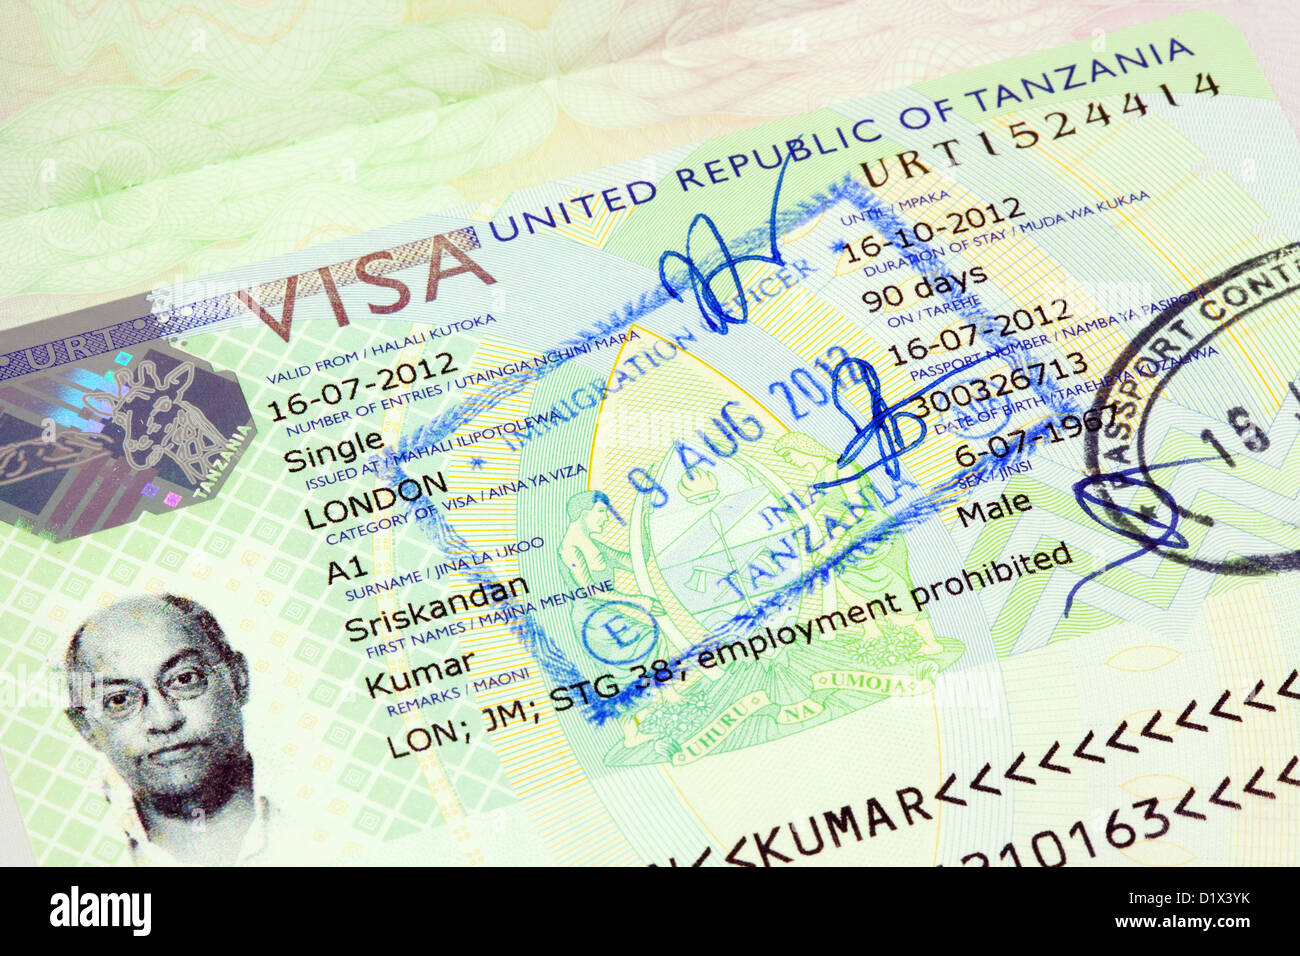 Tanzania visa for holiday travel entry in a UK passport, UK - Stock Image